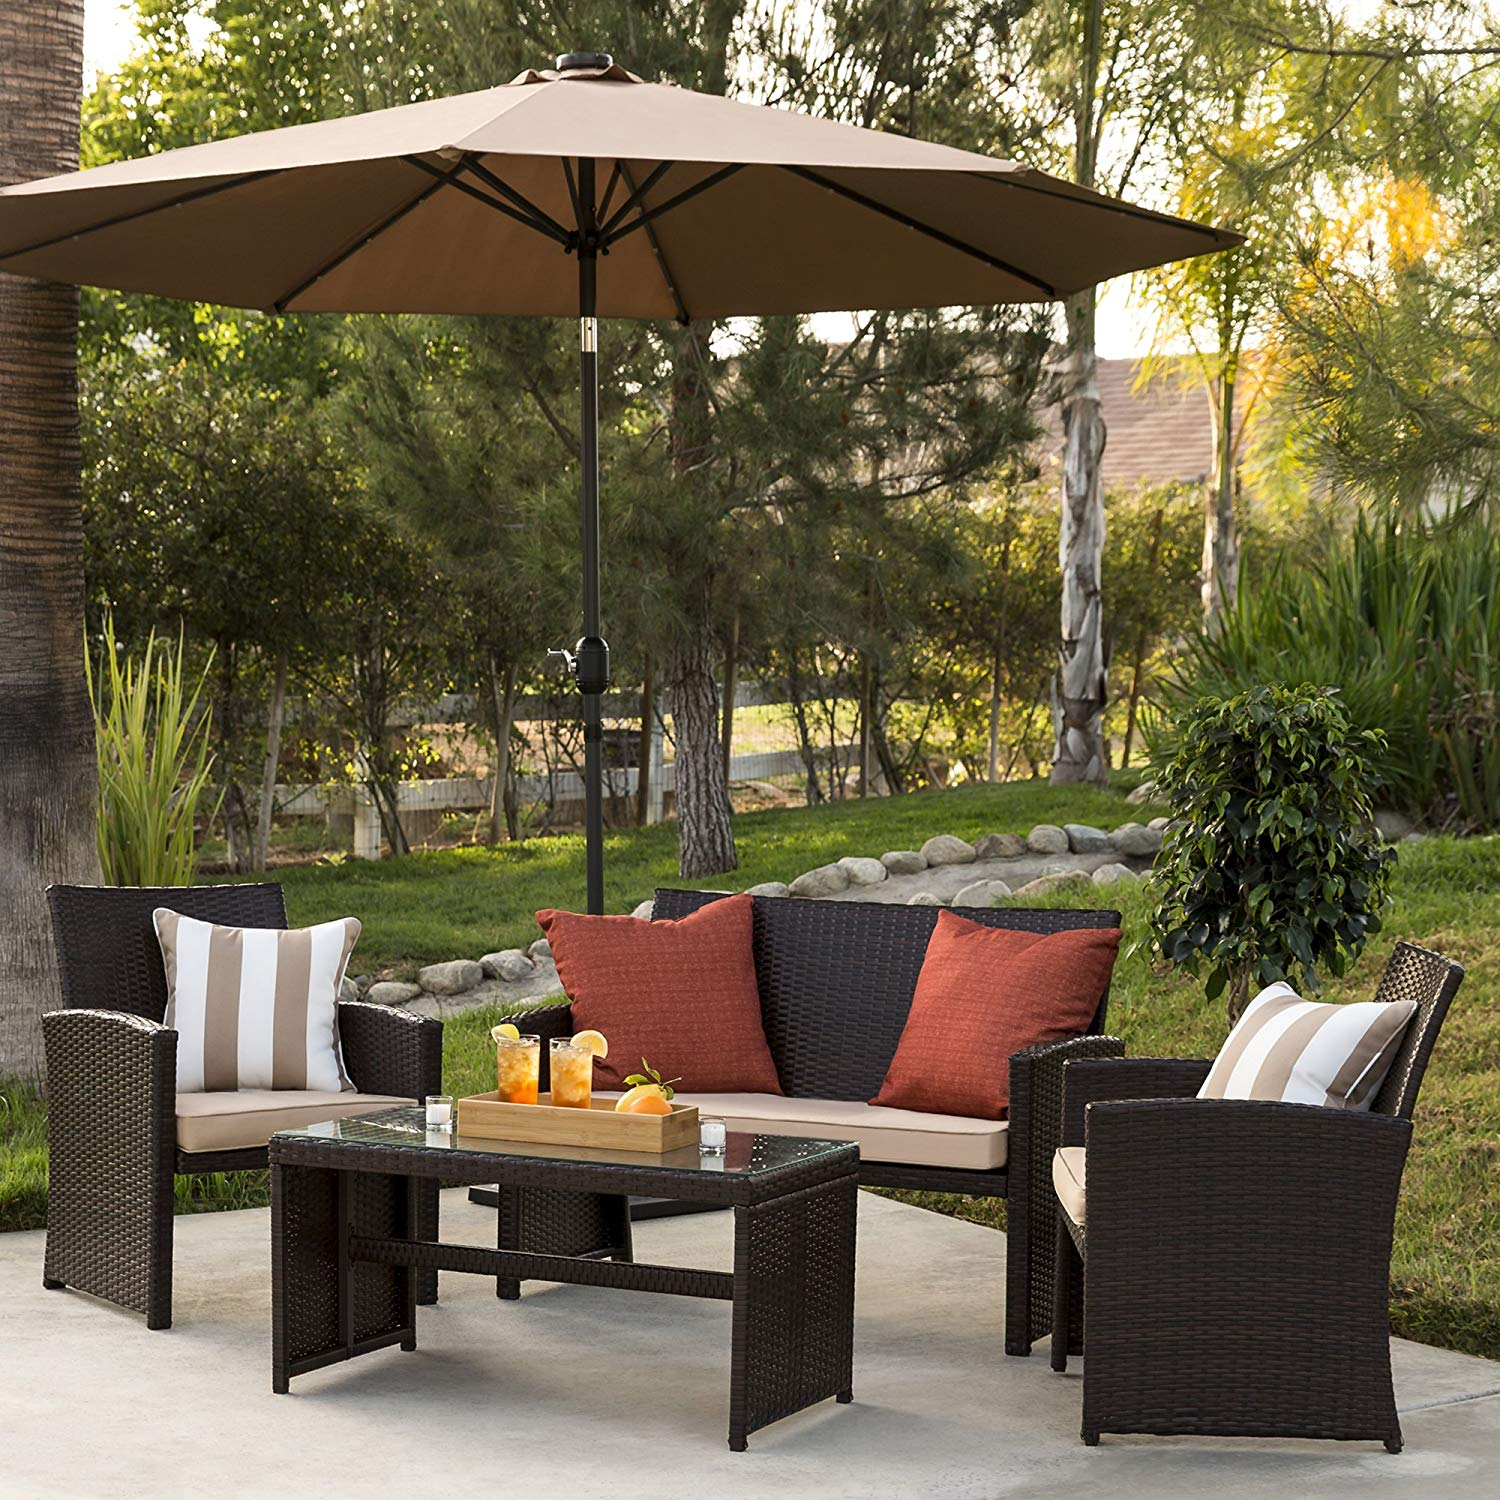 best choice products piece wicker patio furniture set outdoor side table calgary tempered glass sofas cushioned seats brown garden clip light ashley dining chairs ikea ott real